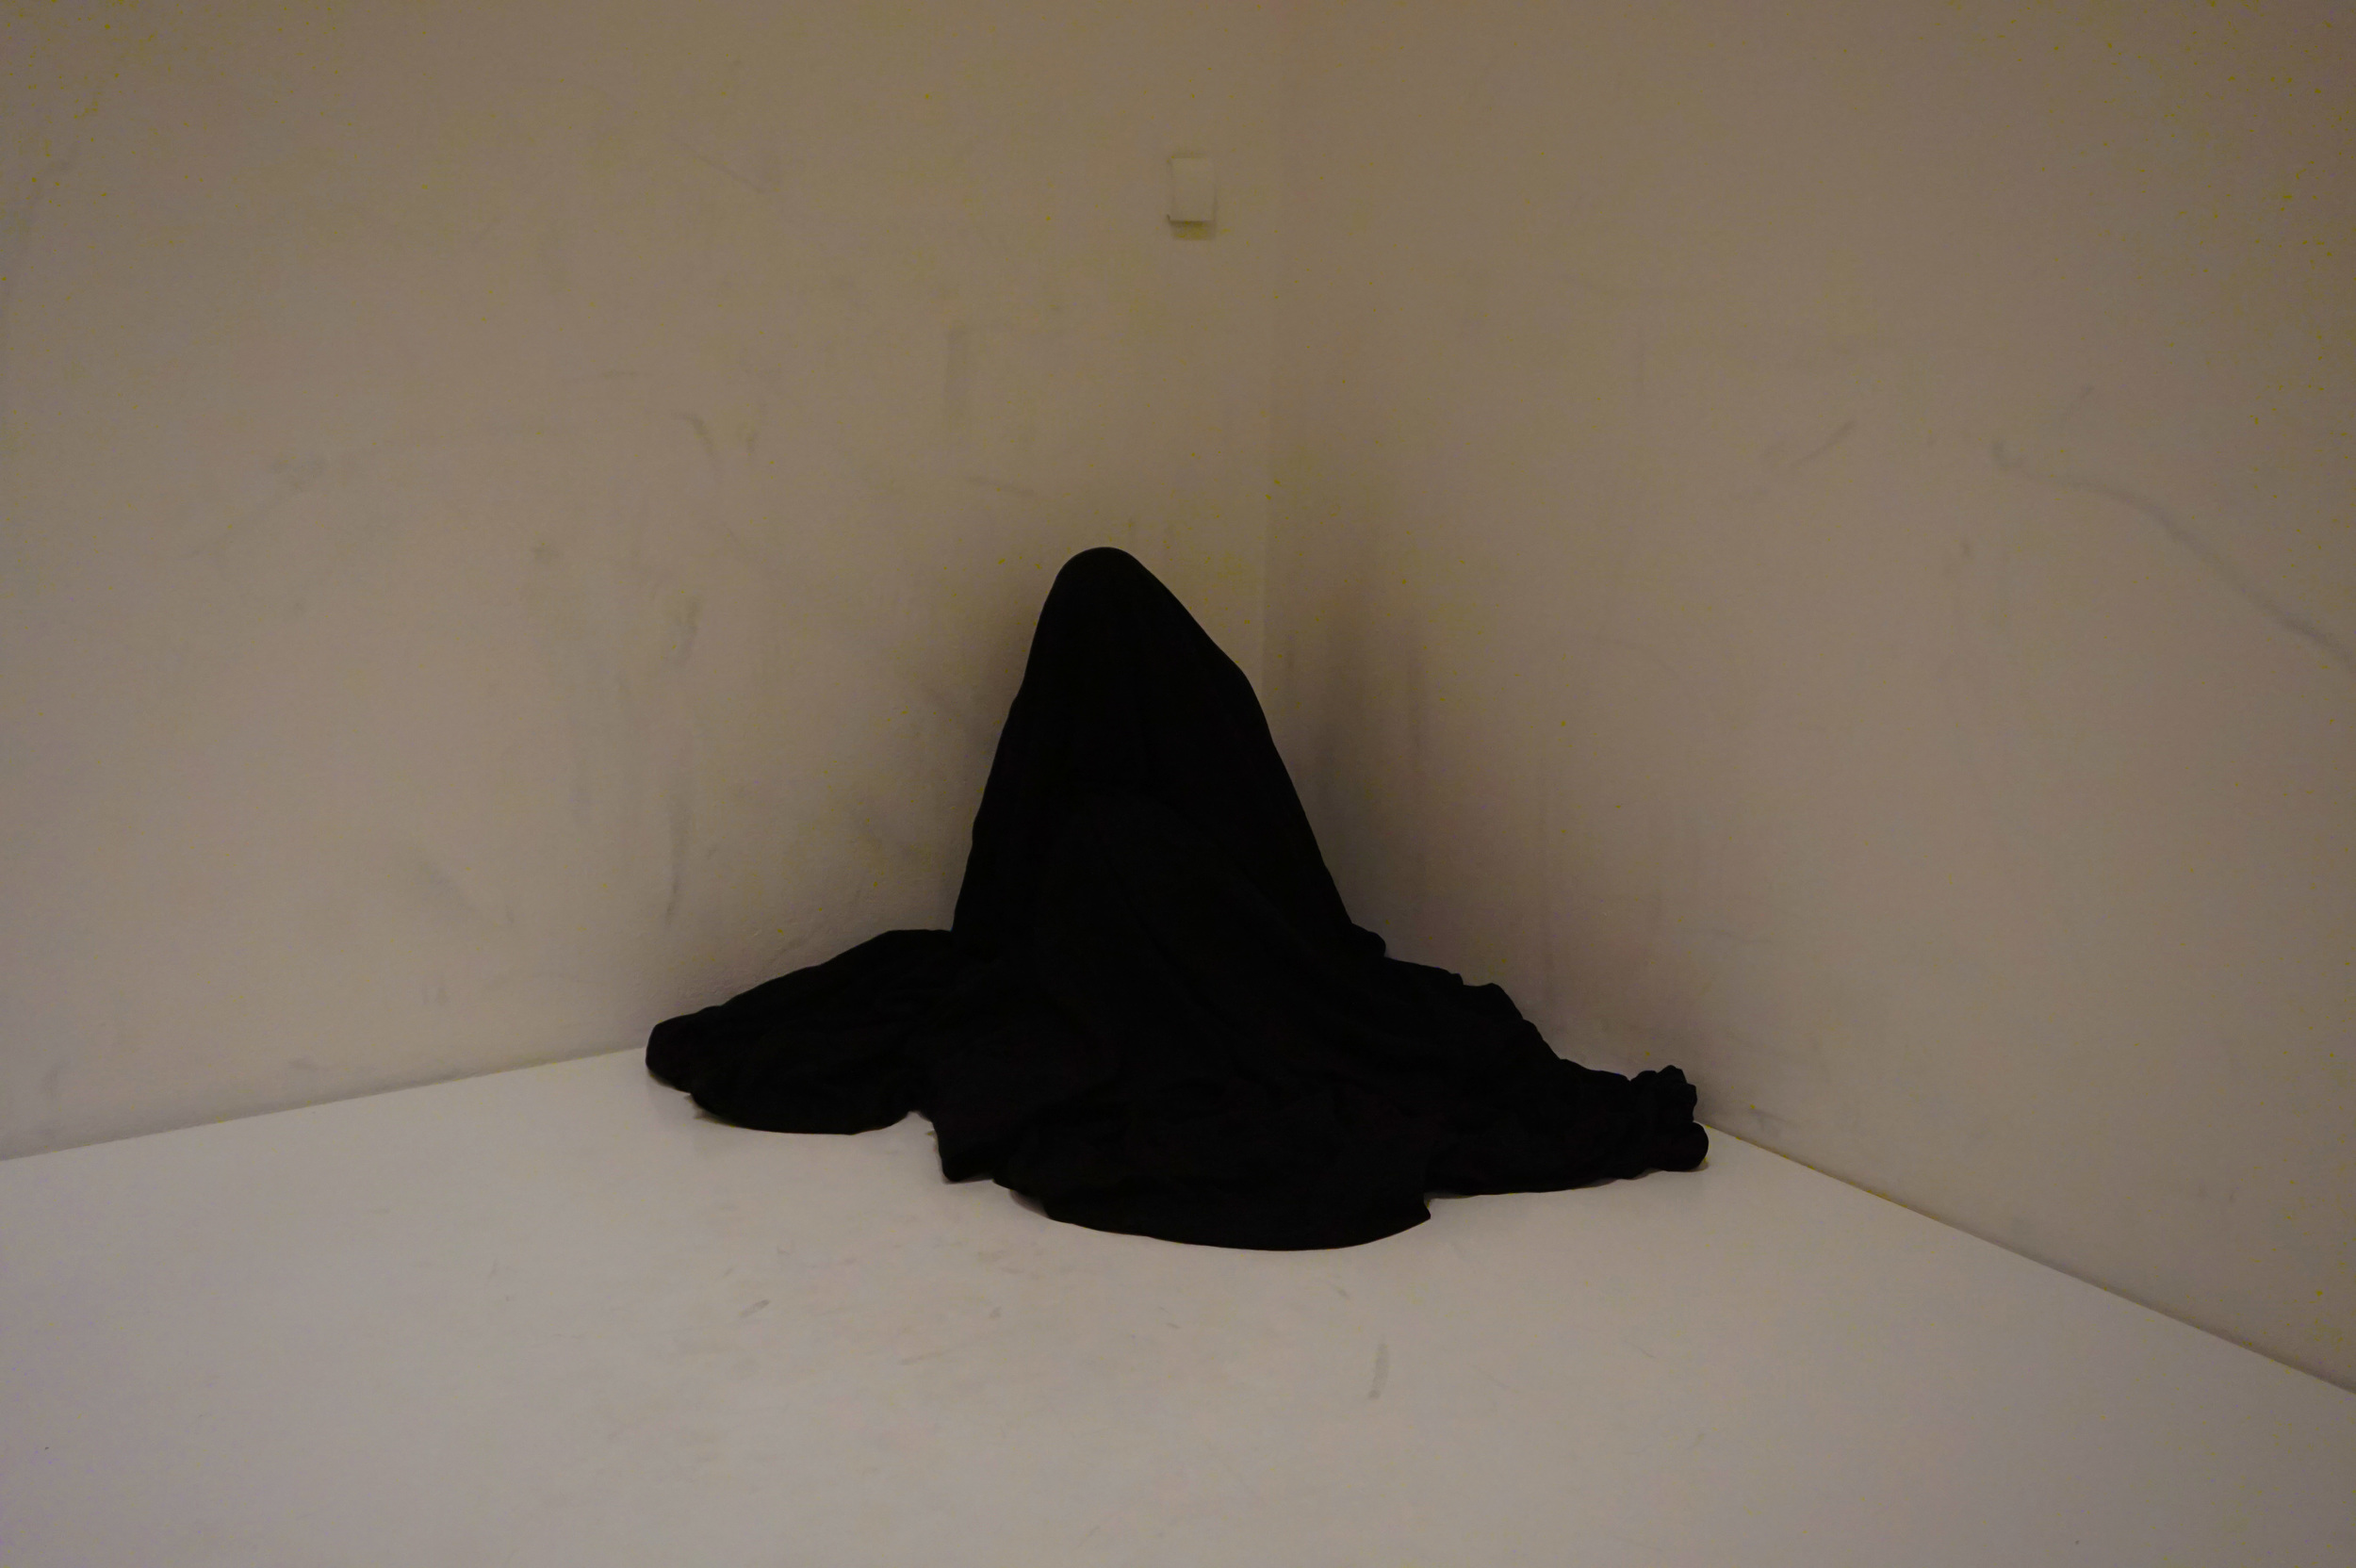 """""""Bag Piece,"""" by Yoko Ono, which was open to visitors to perform, a black bag in the middle of a white room...it was very odd (this guy was in there for at least 45 minutes), but I suppose it served its purpose as art, because I and a bunch of other people couldn't stop watching."""